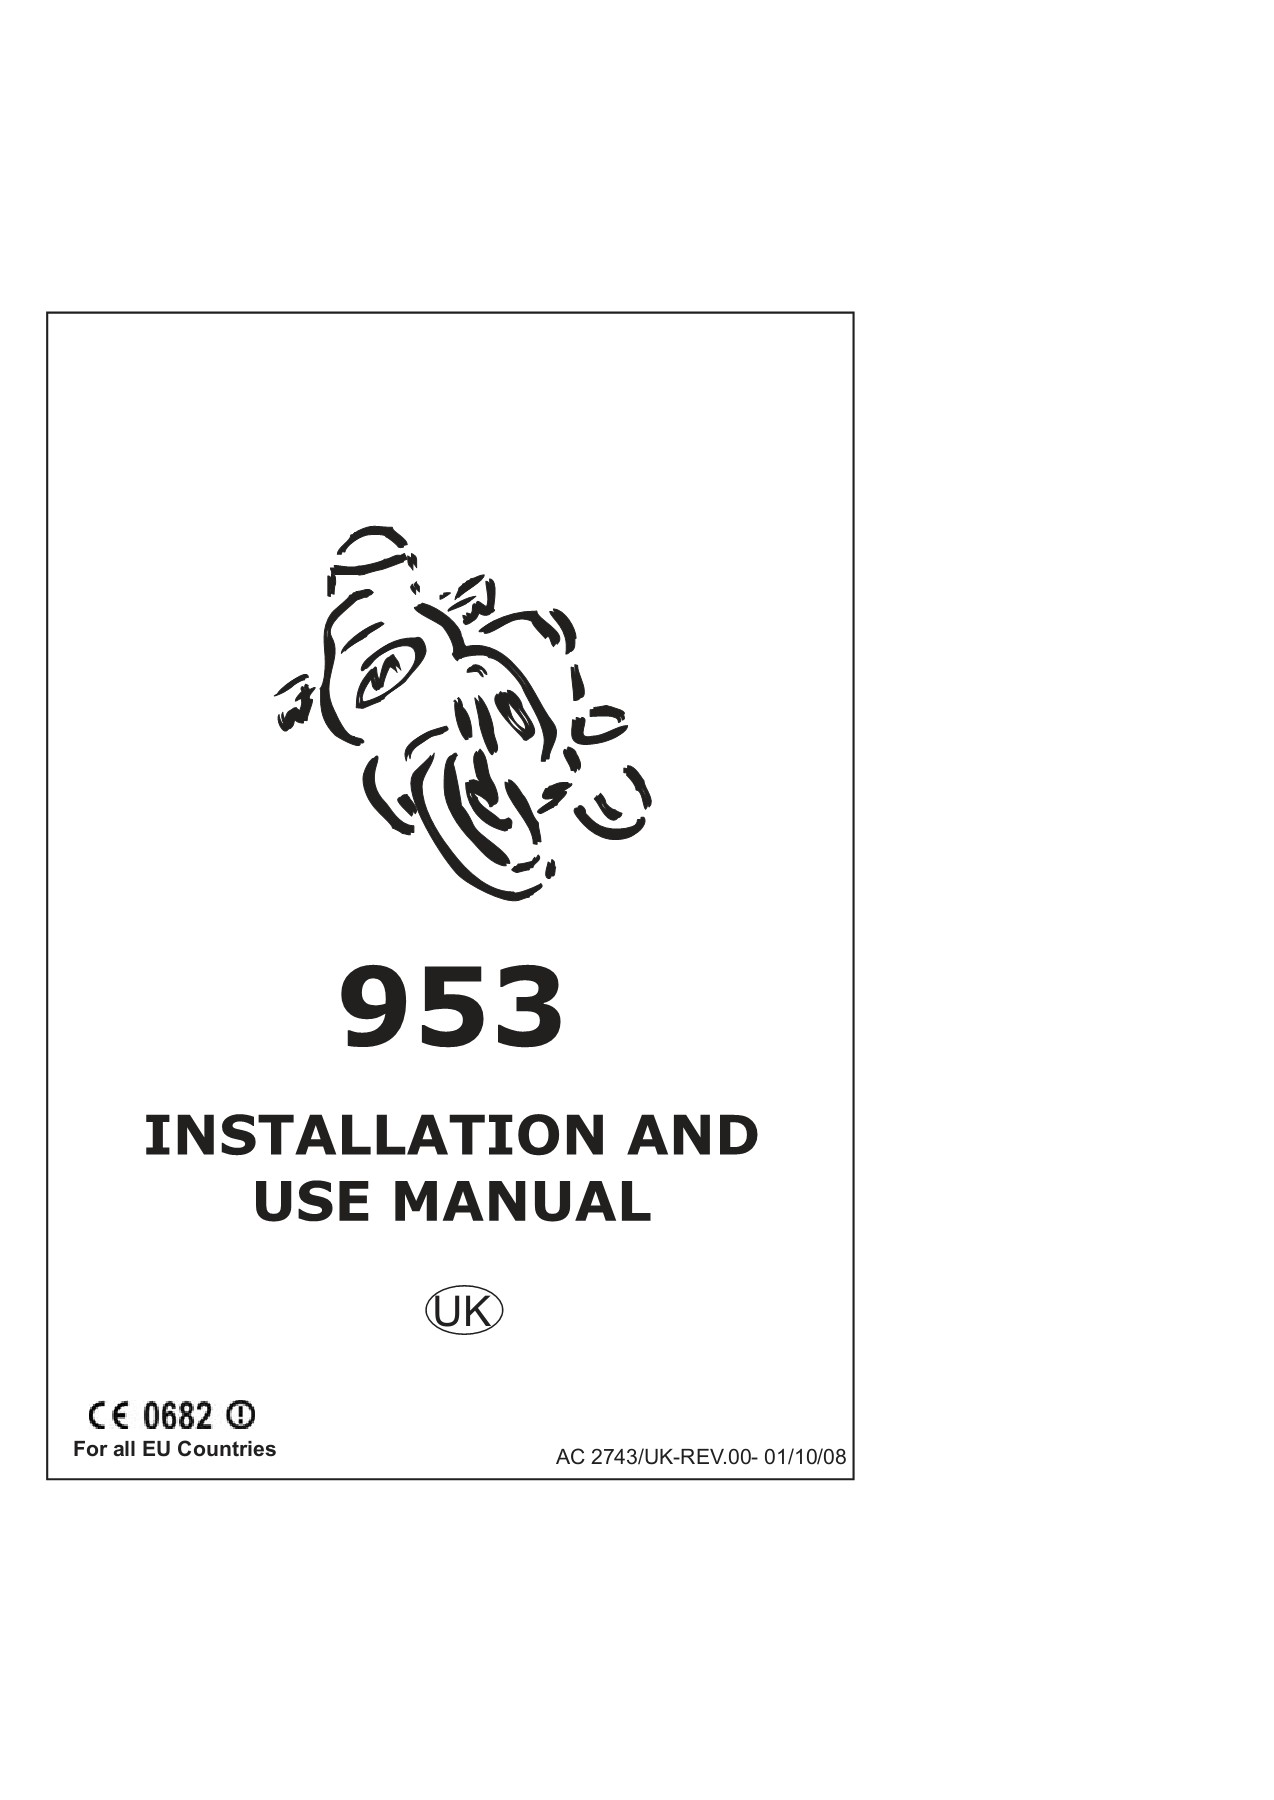 installation and use manual - gemini-alarm com pages 1 - 40 - text version  | anyflip